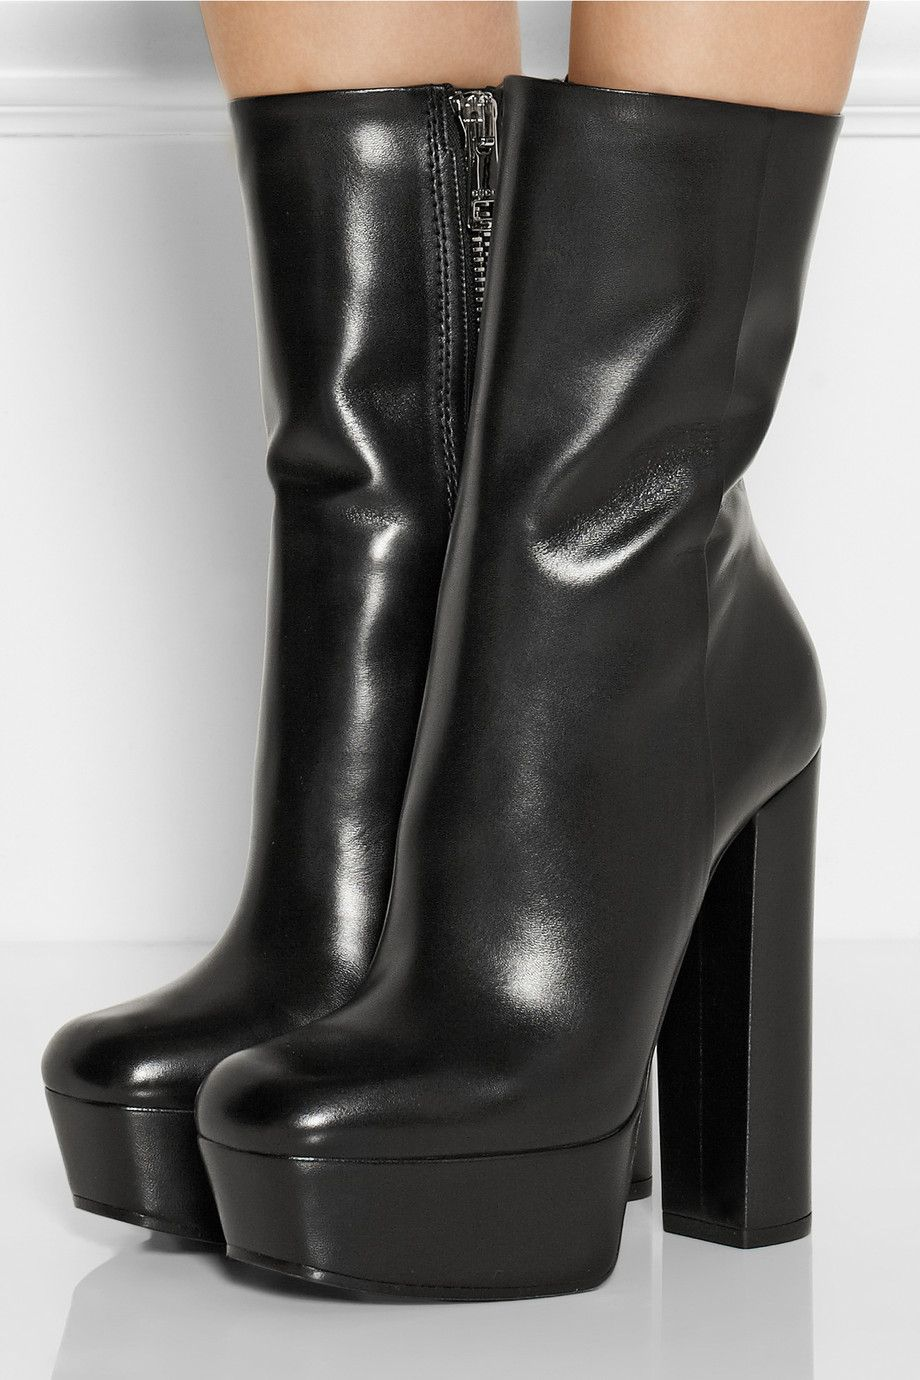 Pin on Omg boots.